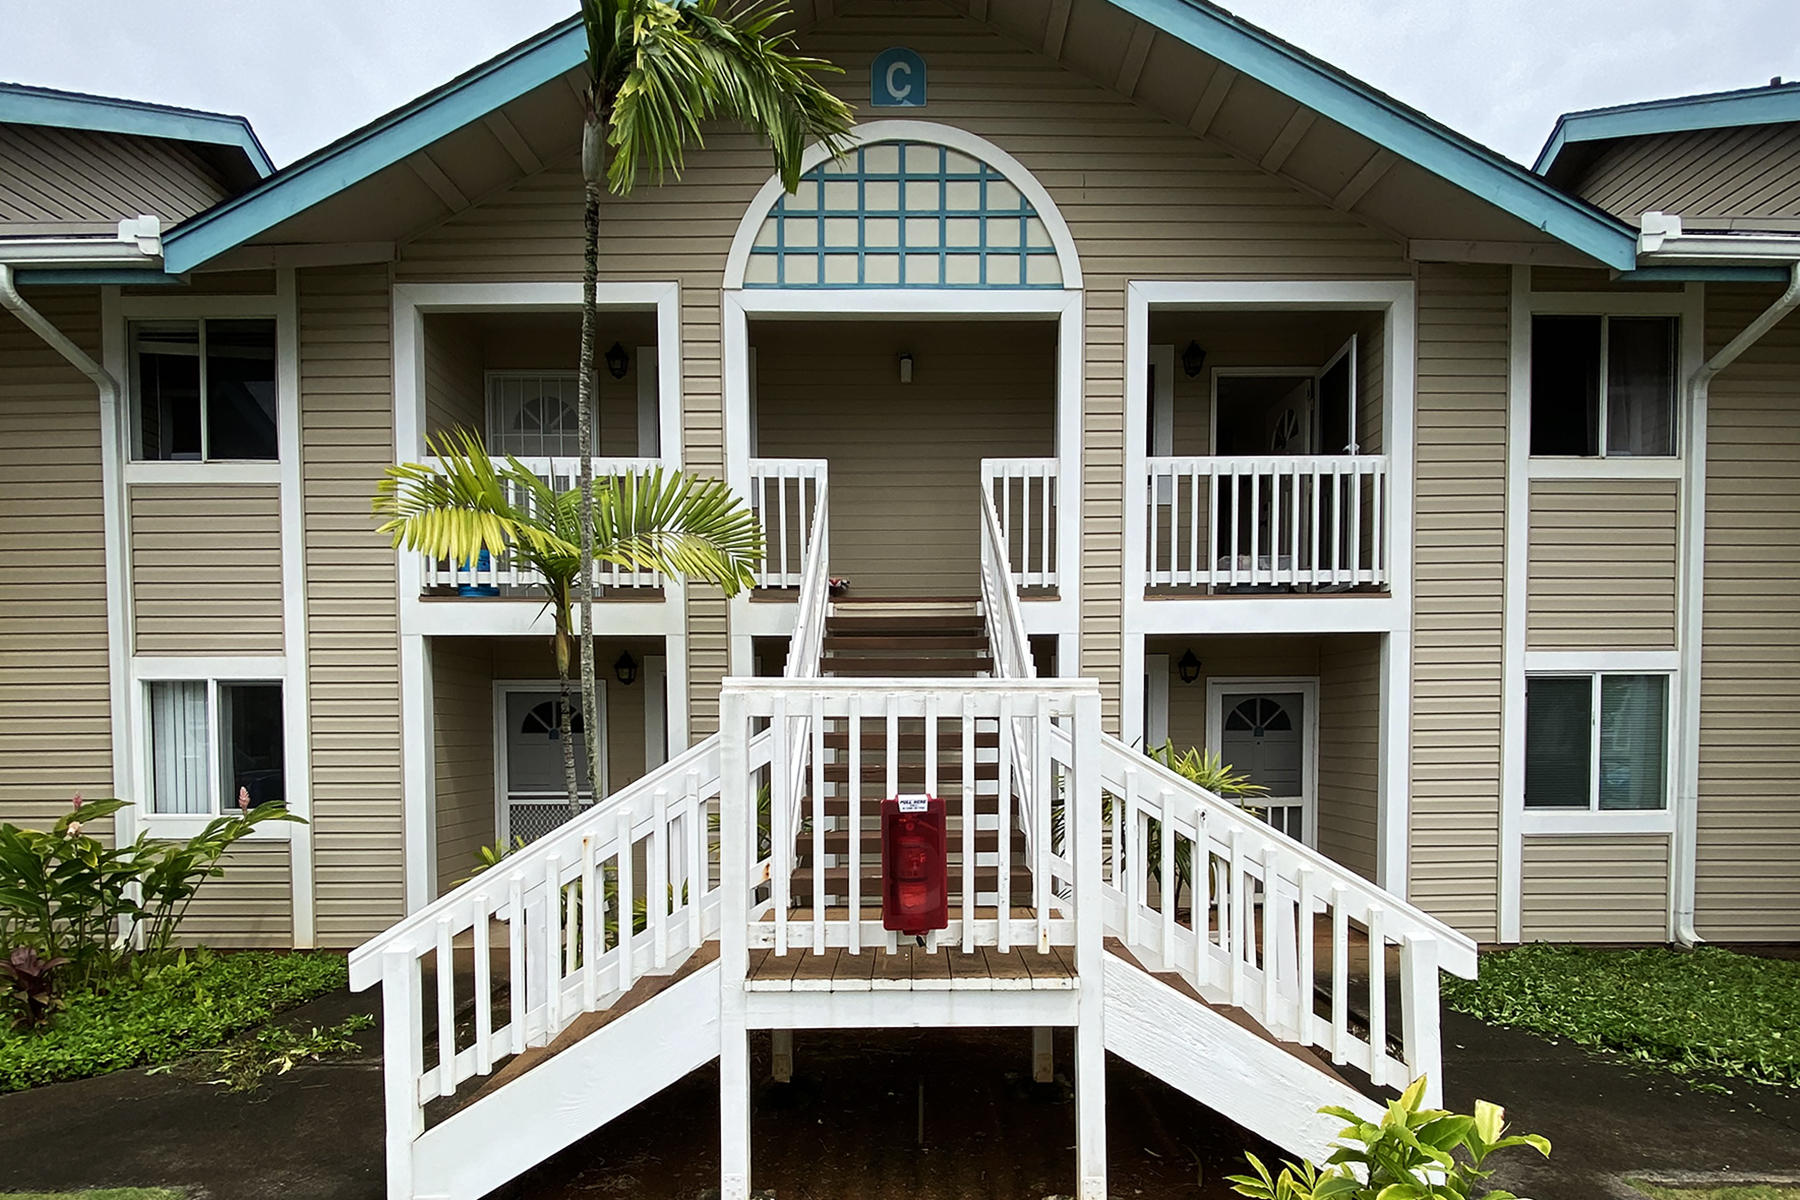 Condominiums for Sale at 1970 HANALIMA ST #C204 LIHUE, HI 96766 1970 HANALIMA ST #C204 Lihue, Hawaii 96766 United States